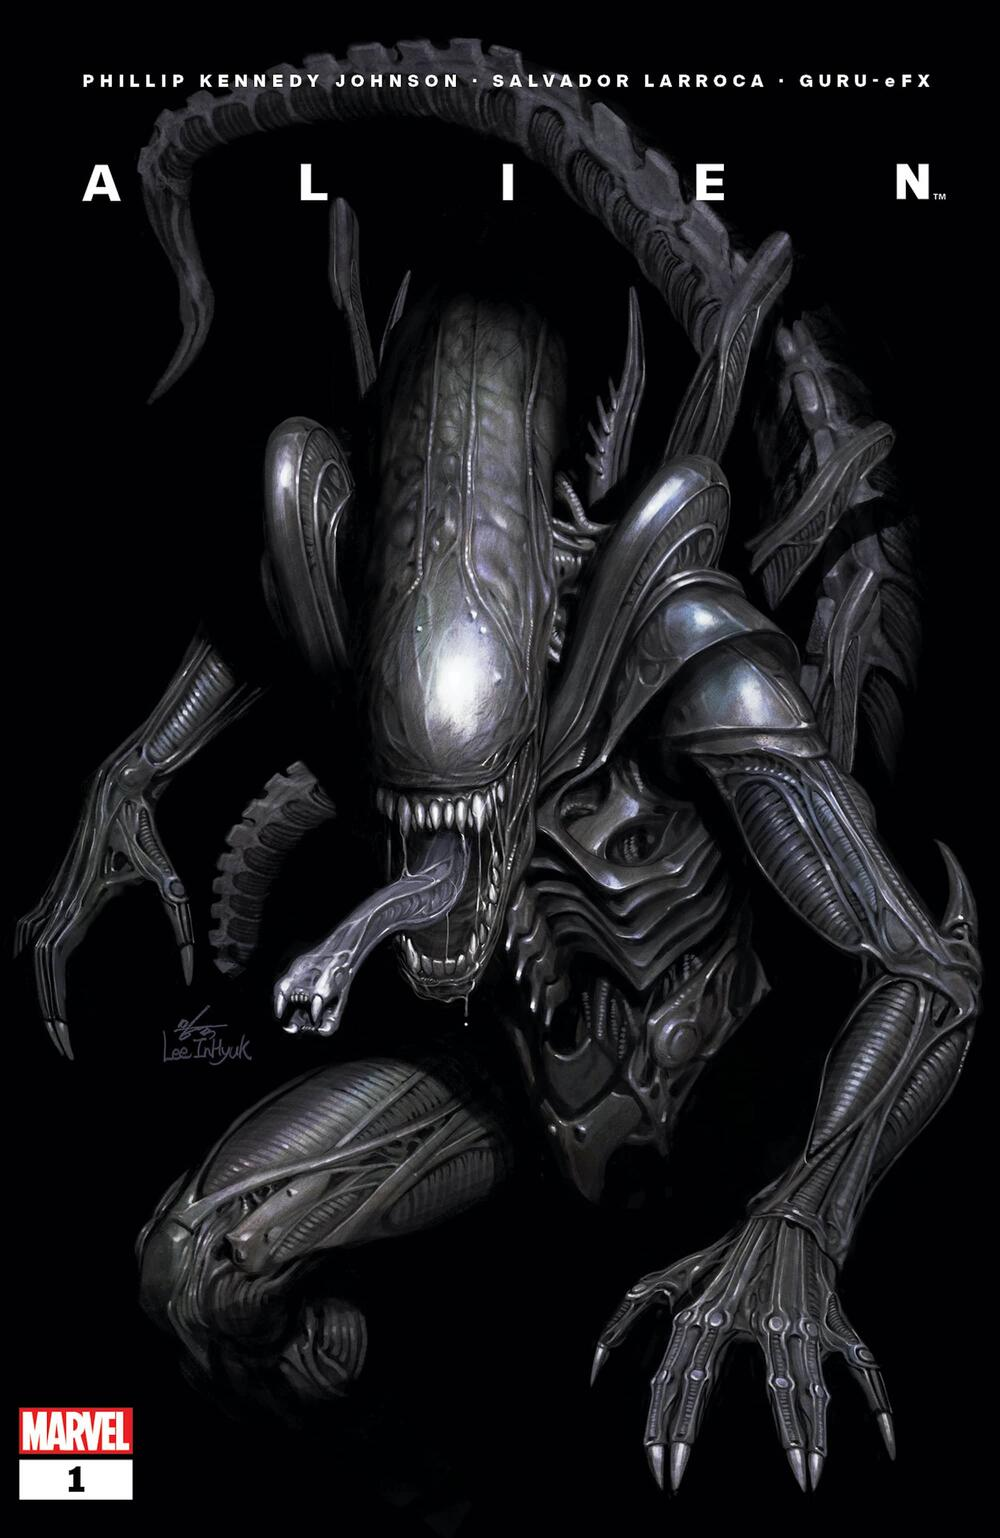 Marvel Comics' ALIEN #1